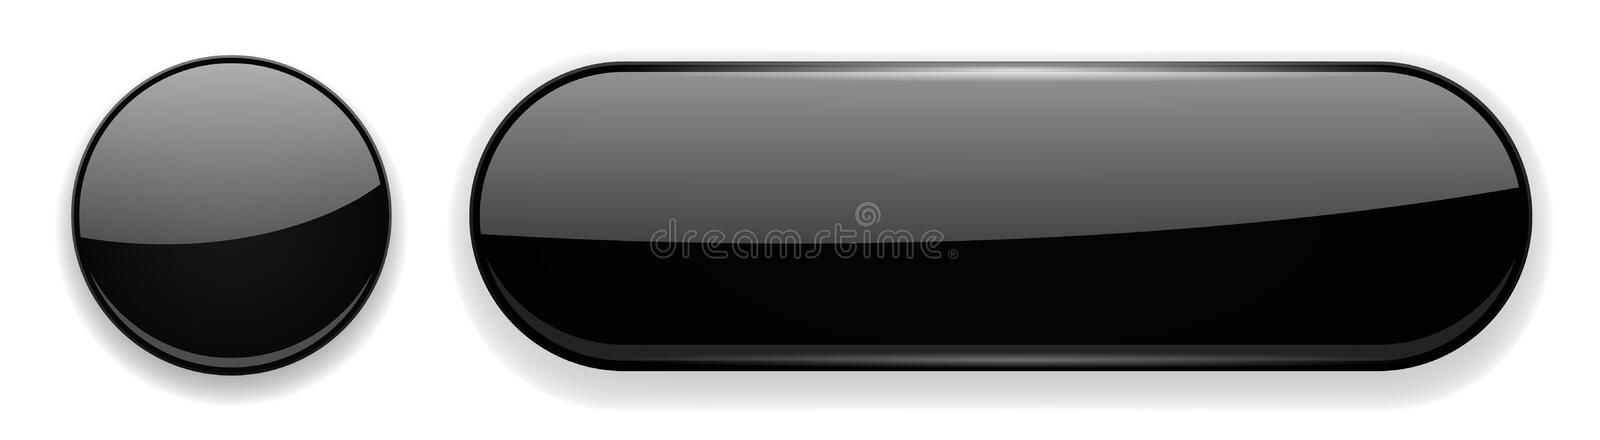 Black glass buttons. 3d icons. Vector illustration isolated on white background stock illustration